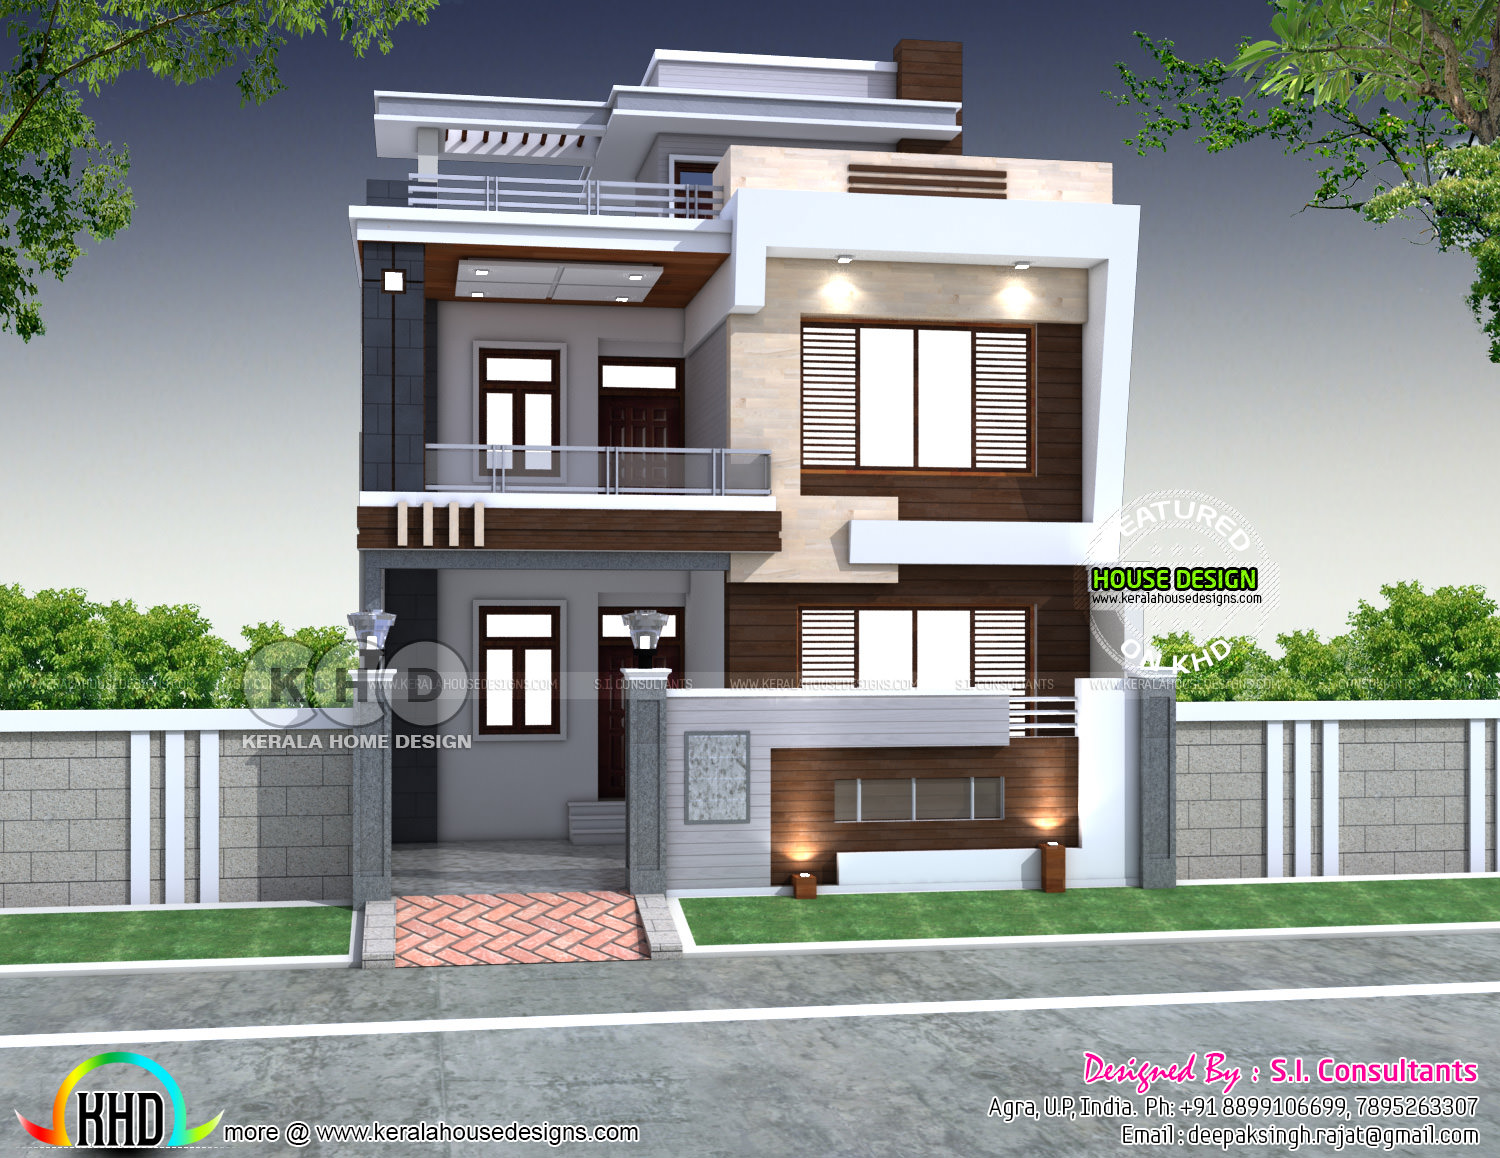 Indian Home Design: 28'x 60' Modern Indian House Plan